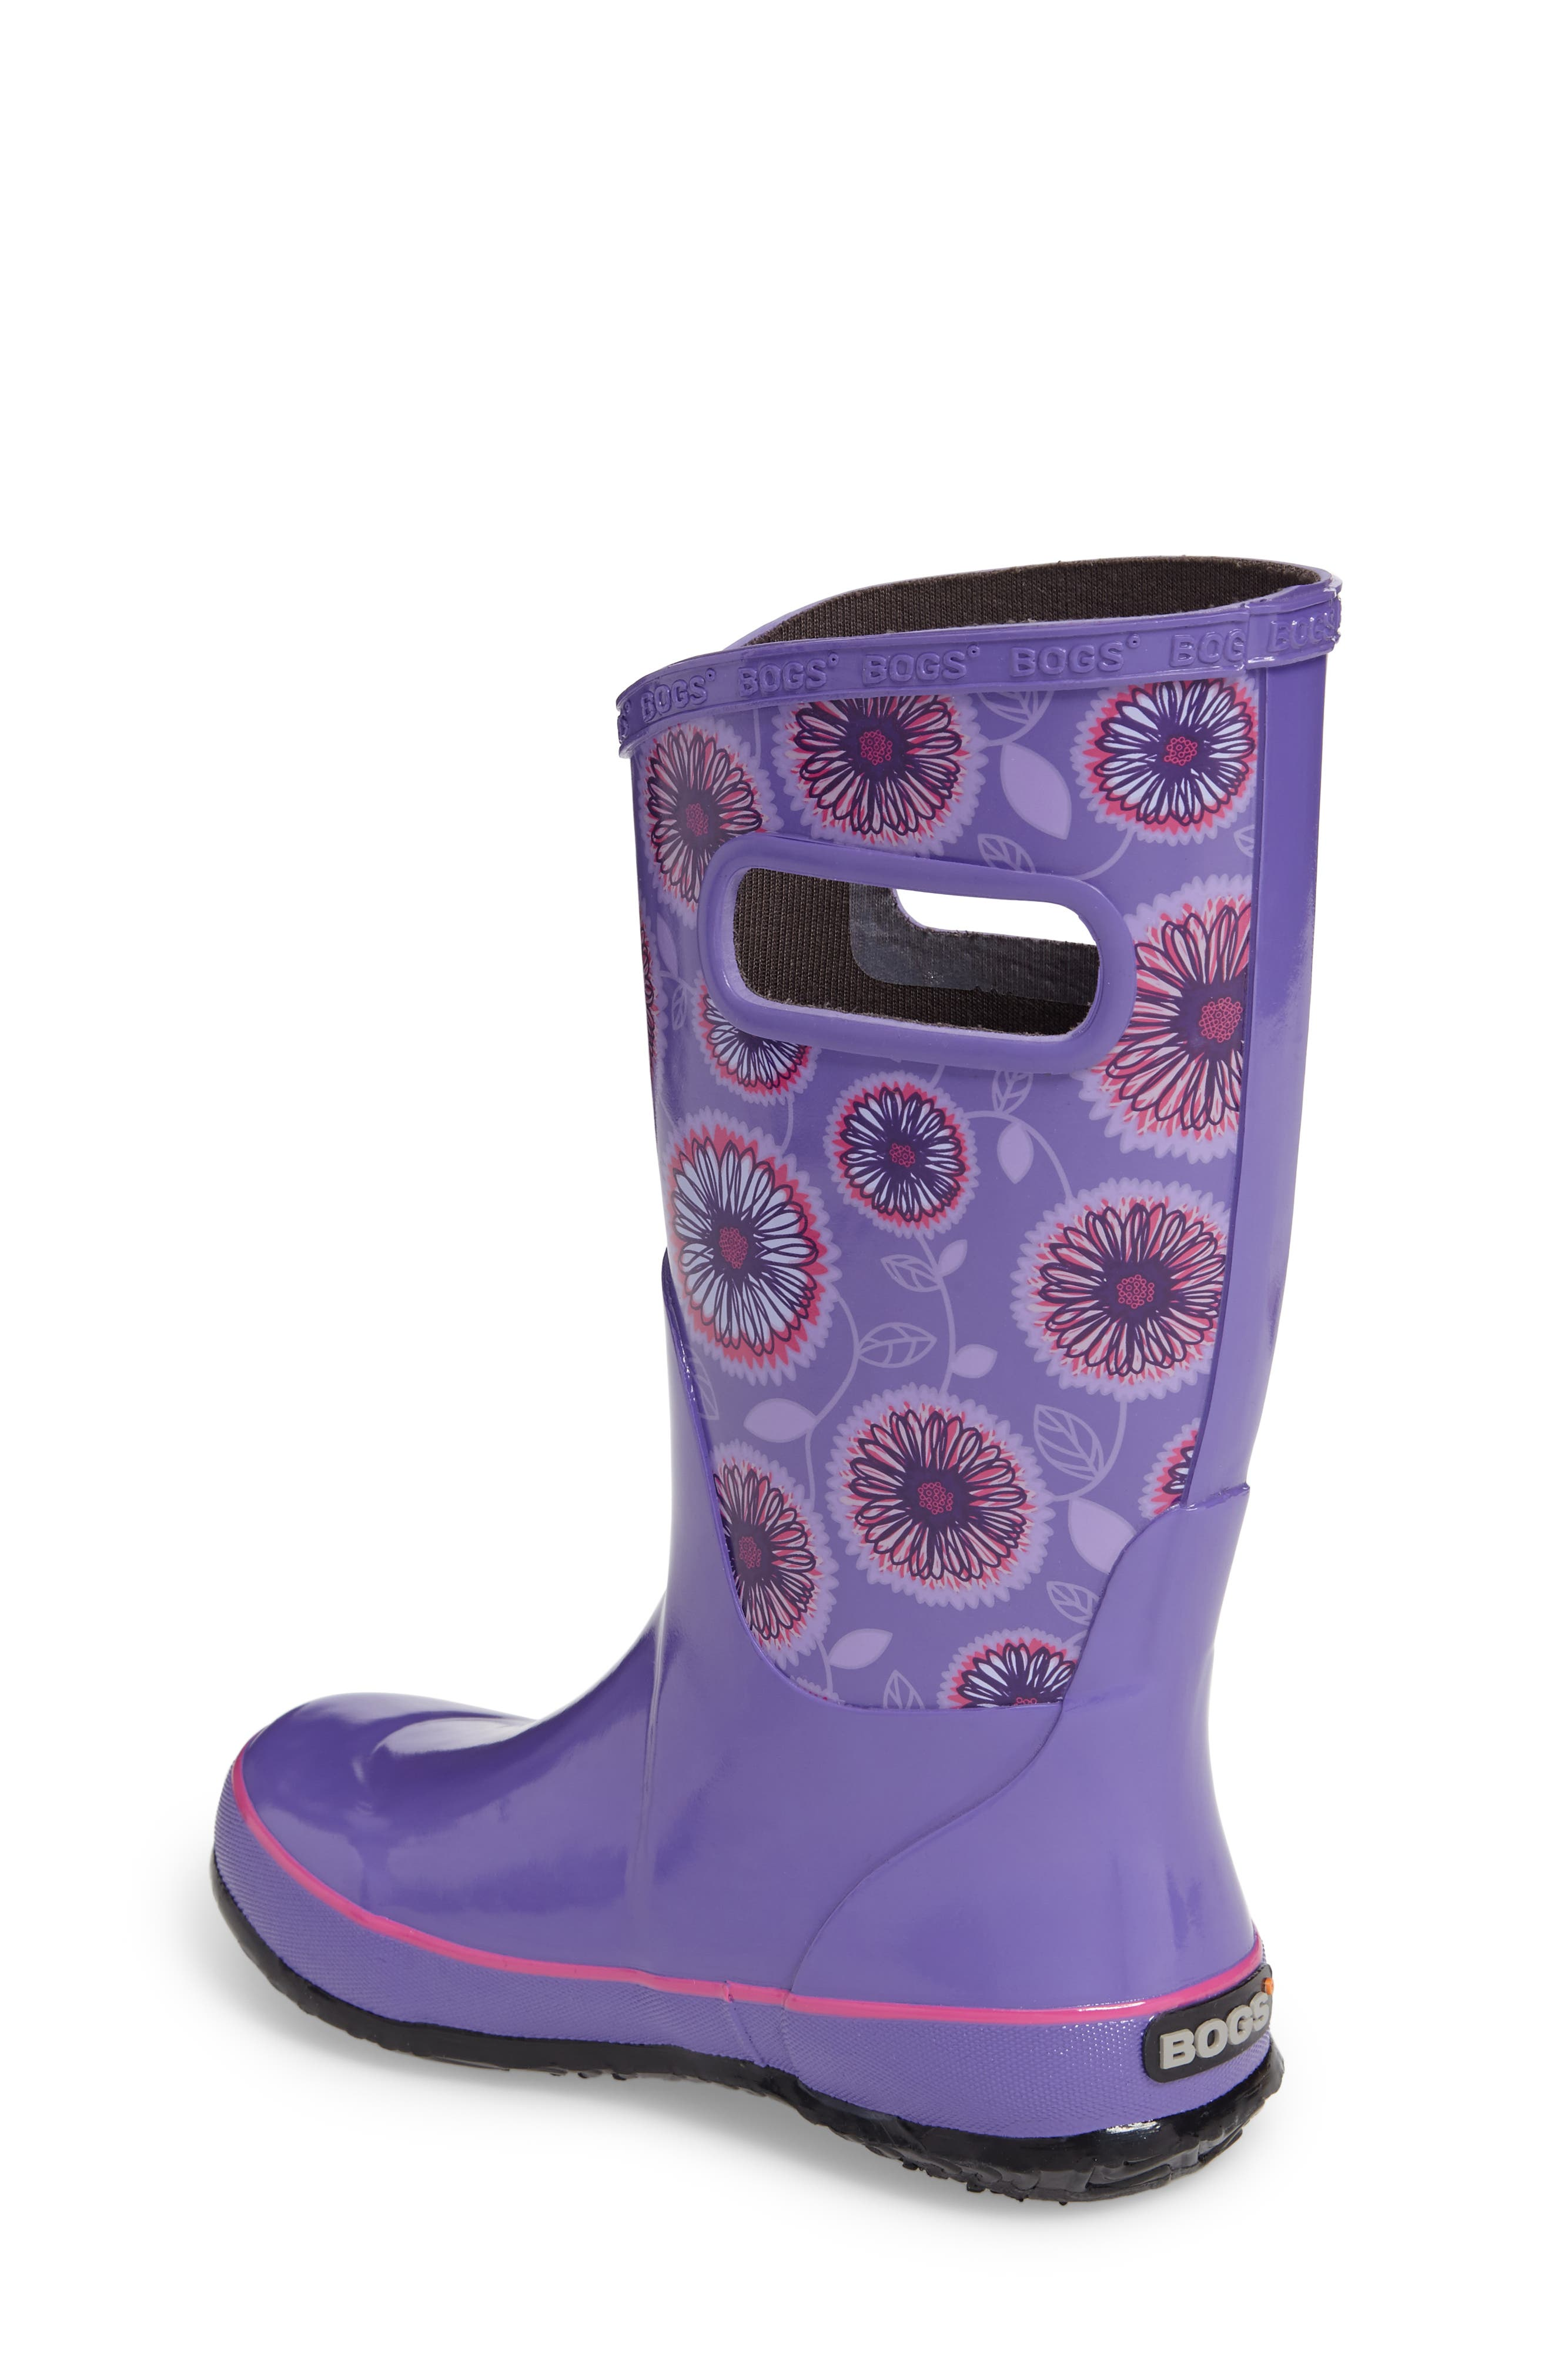 Wildflowers Rubber Rain Boot,                             Alternate thumbnail 2, color,                             500